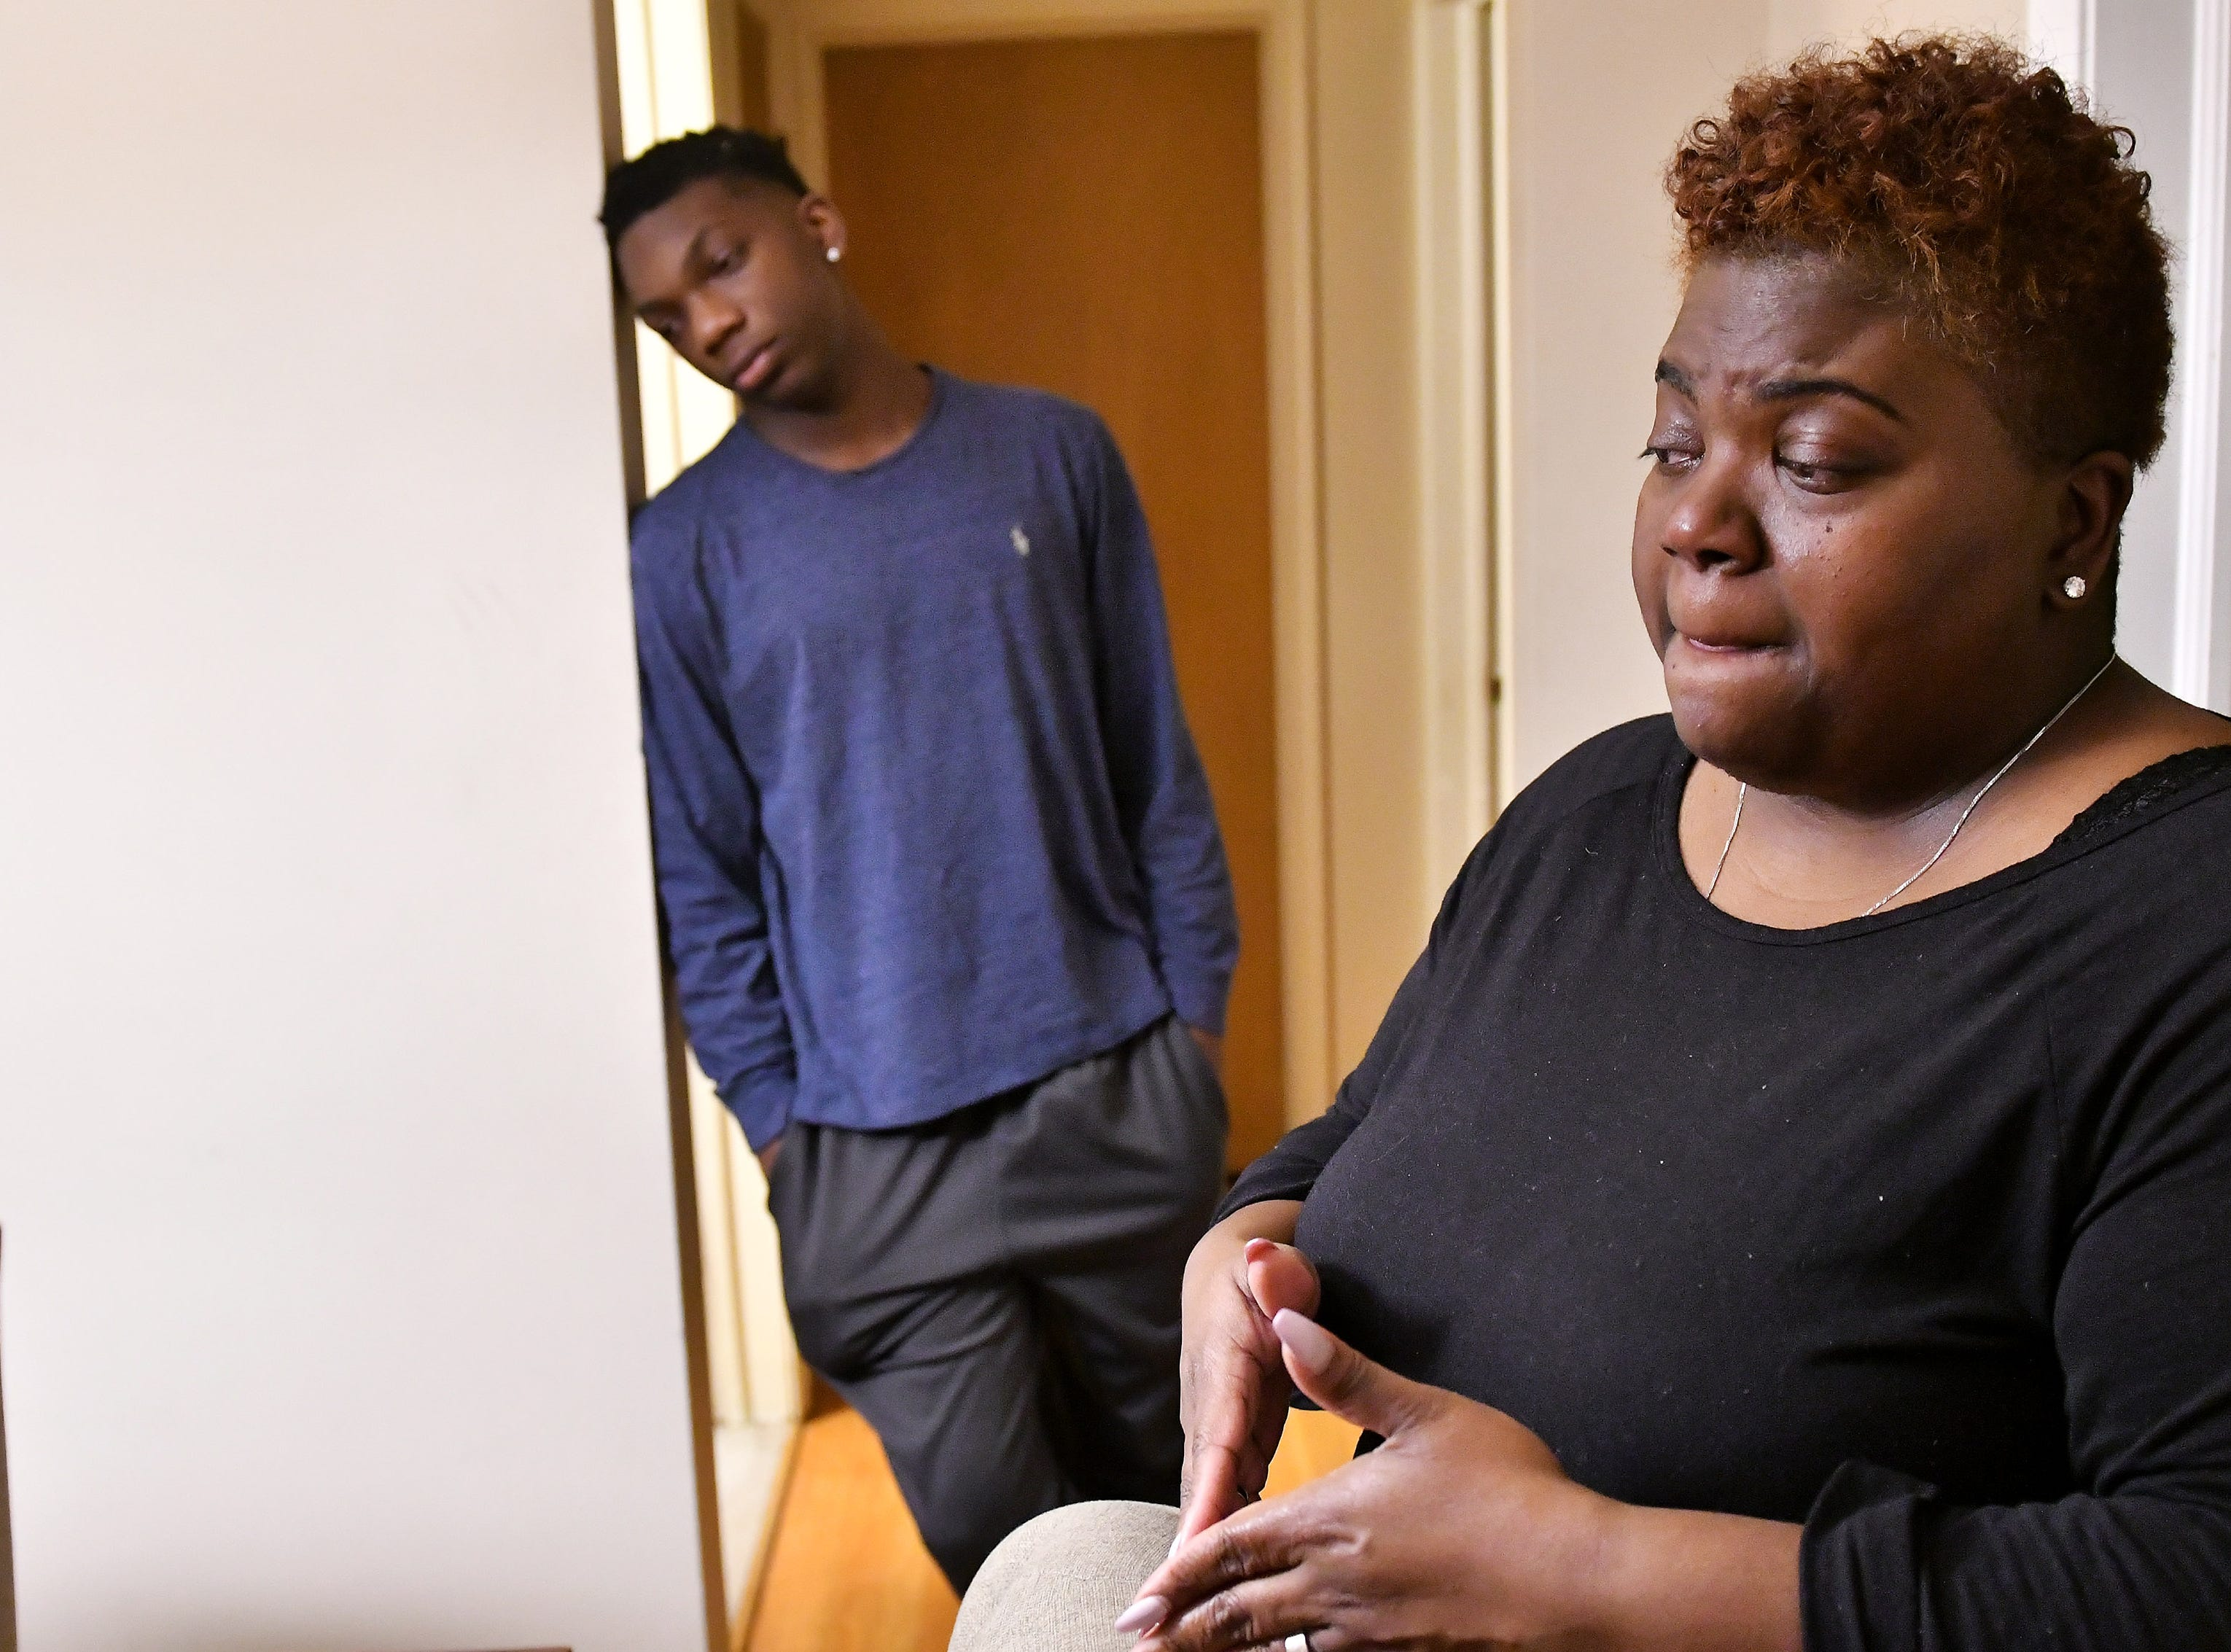 Deidra Harris-Thomas talks about gun violence and the death of her son, Corey Harris-Thomas, 17, at her home in Harper Woods on March 5, 2018. At left is her youngest son, Chris, 15. Another son, Corey Harris-Thomas, was shot and killed in June 2017 while attempting to sell a pair of Air Jordans.